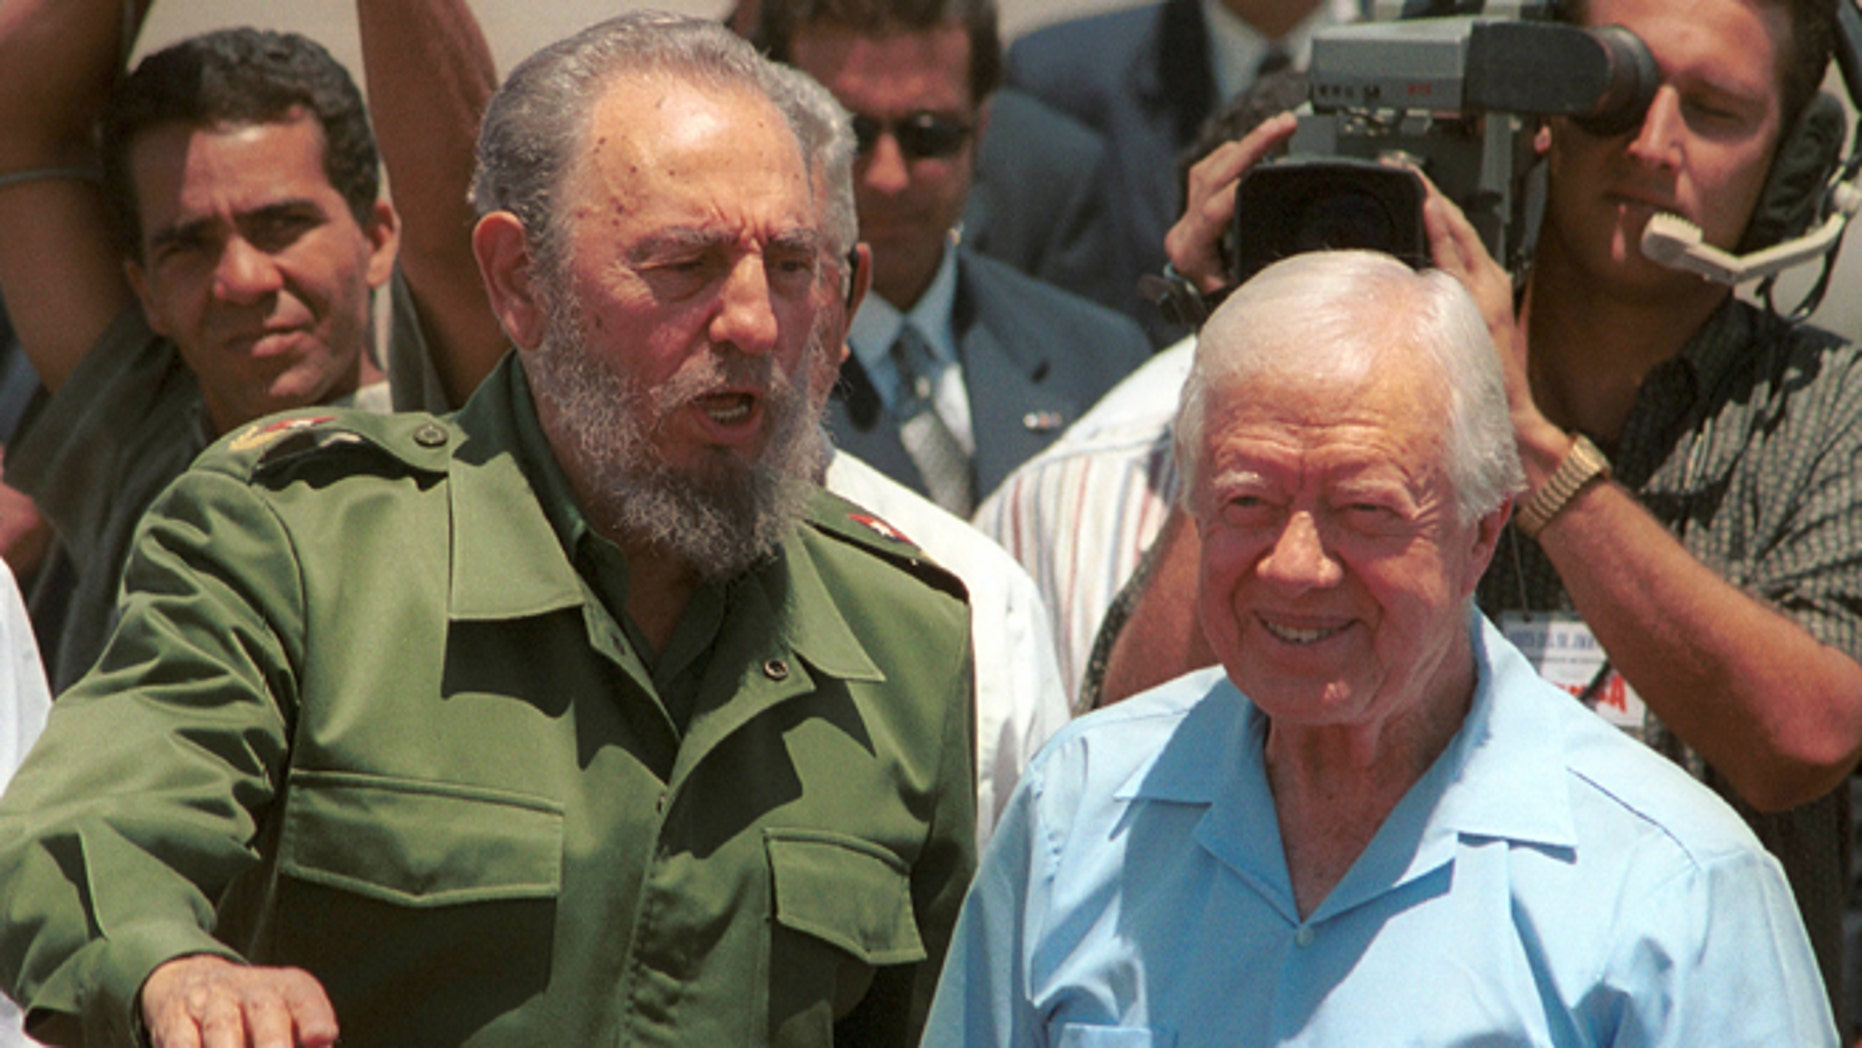 405512 01: Cuban leader Fidel Castro (L) speaks with the former U.S. President Jimmy Carter during a departure ceremony at Jose Marti International airport May 17, 2002 in Havana, Cuba. Carter visited for six days in an effort to improve relations between the U.S. and Cuba. (Photo by Jorge Rey/Getty Images)